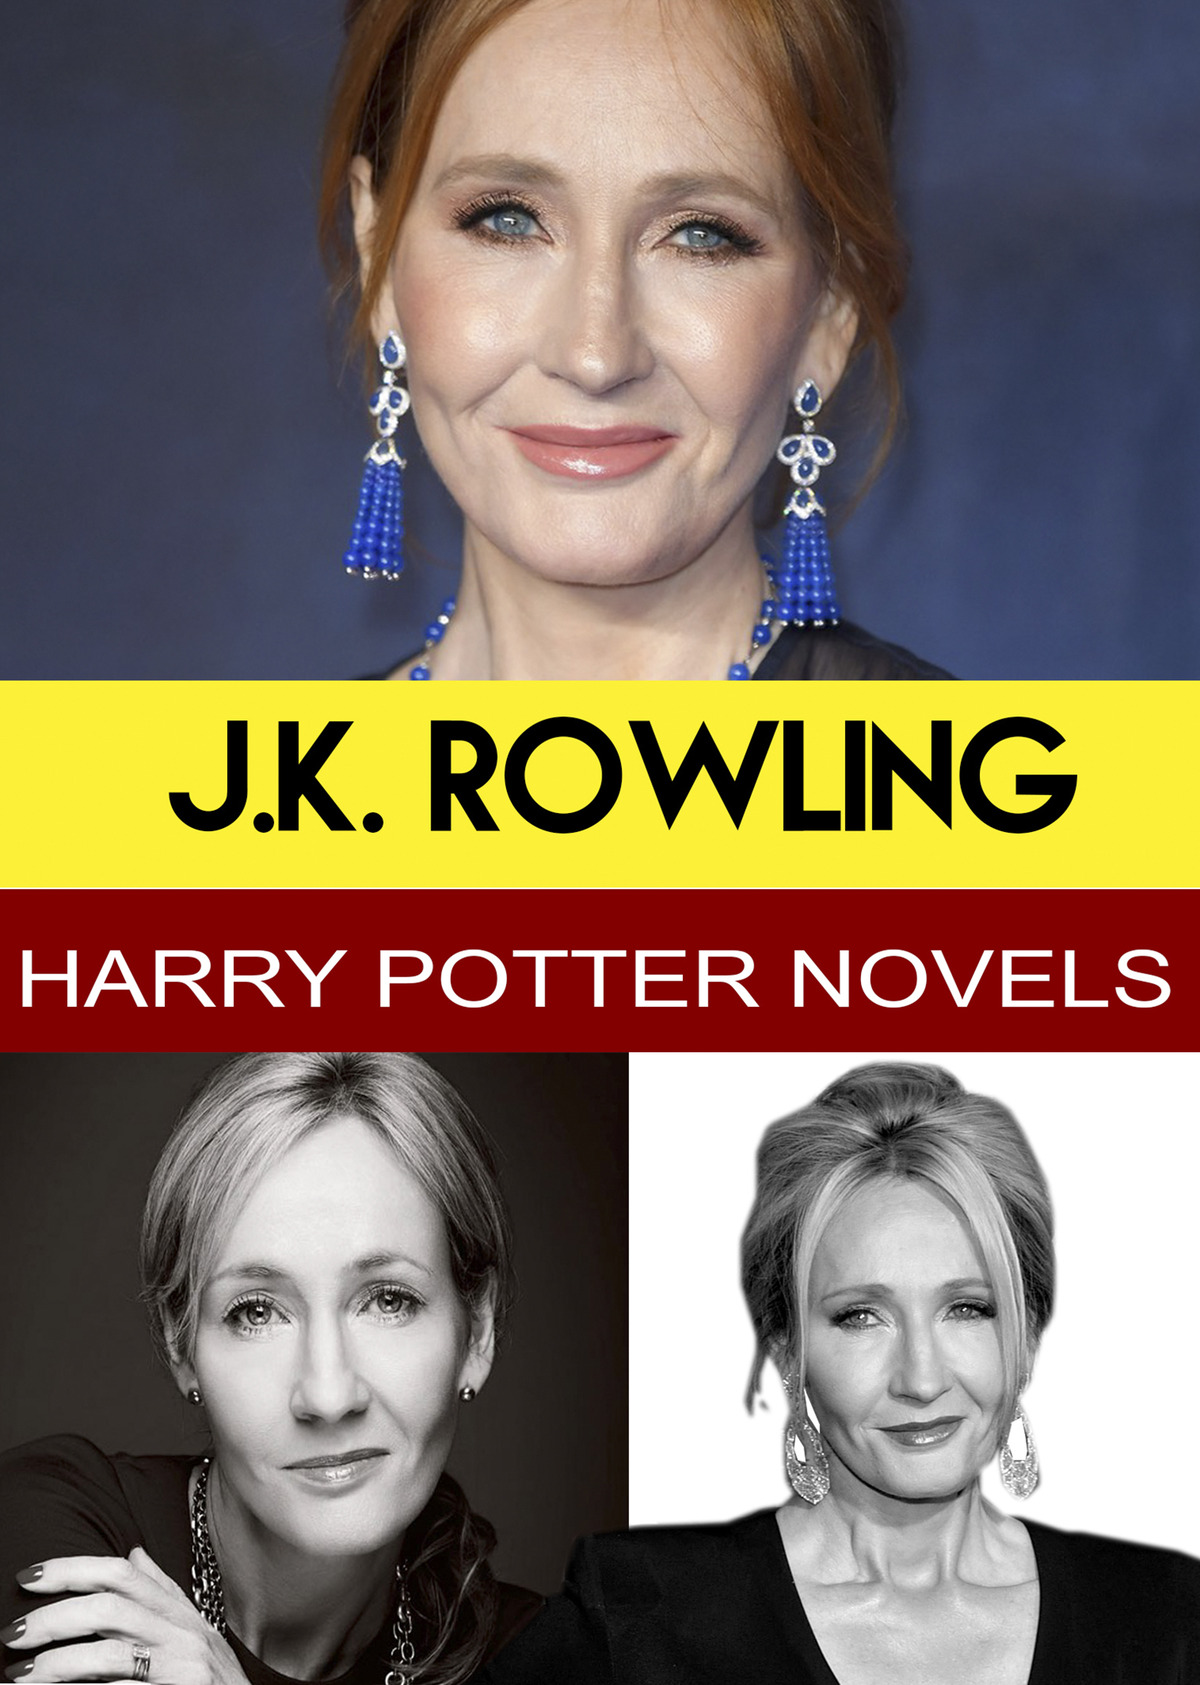 L7828 - J.K Rowling - Harry Potter